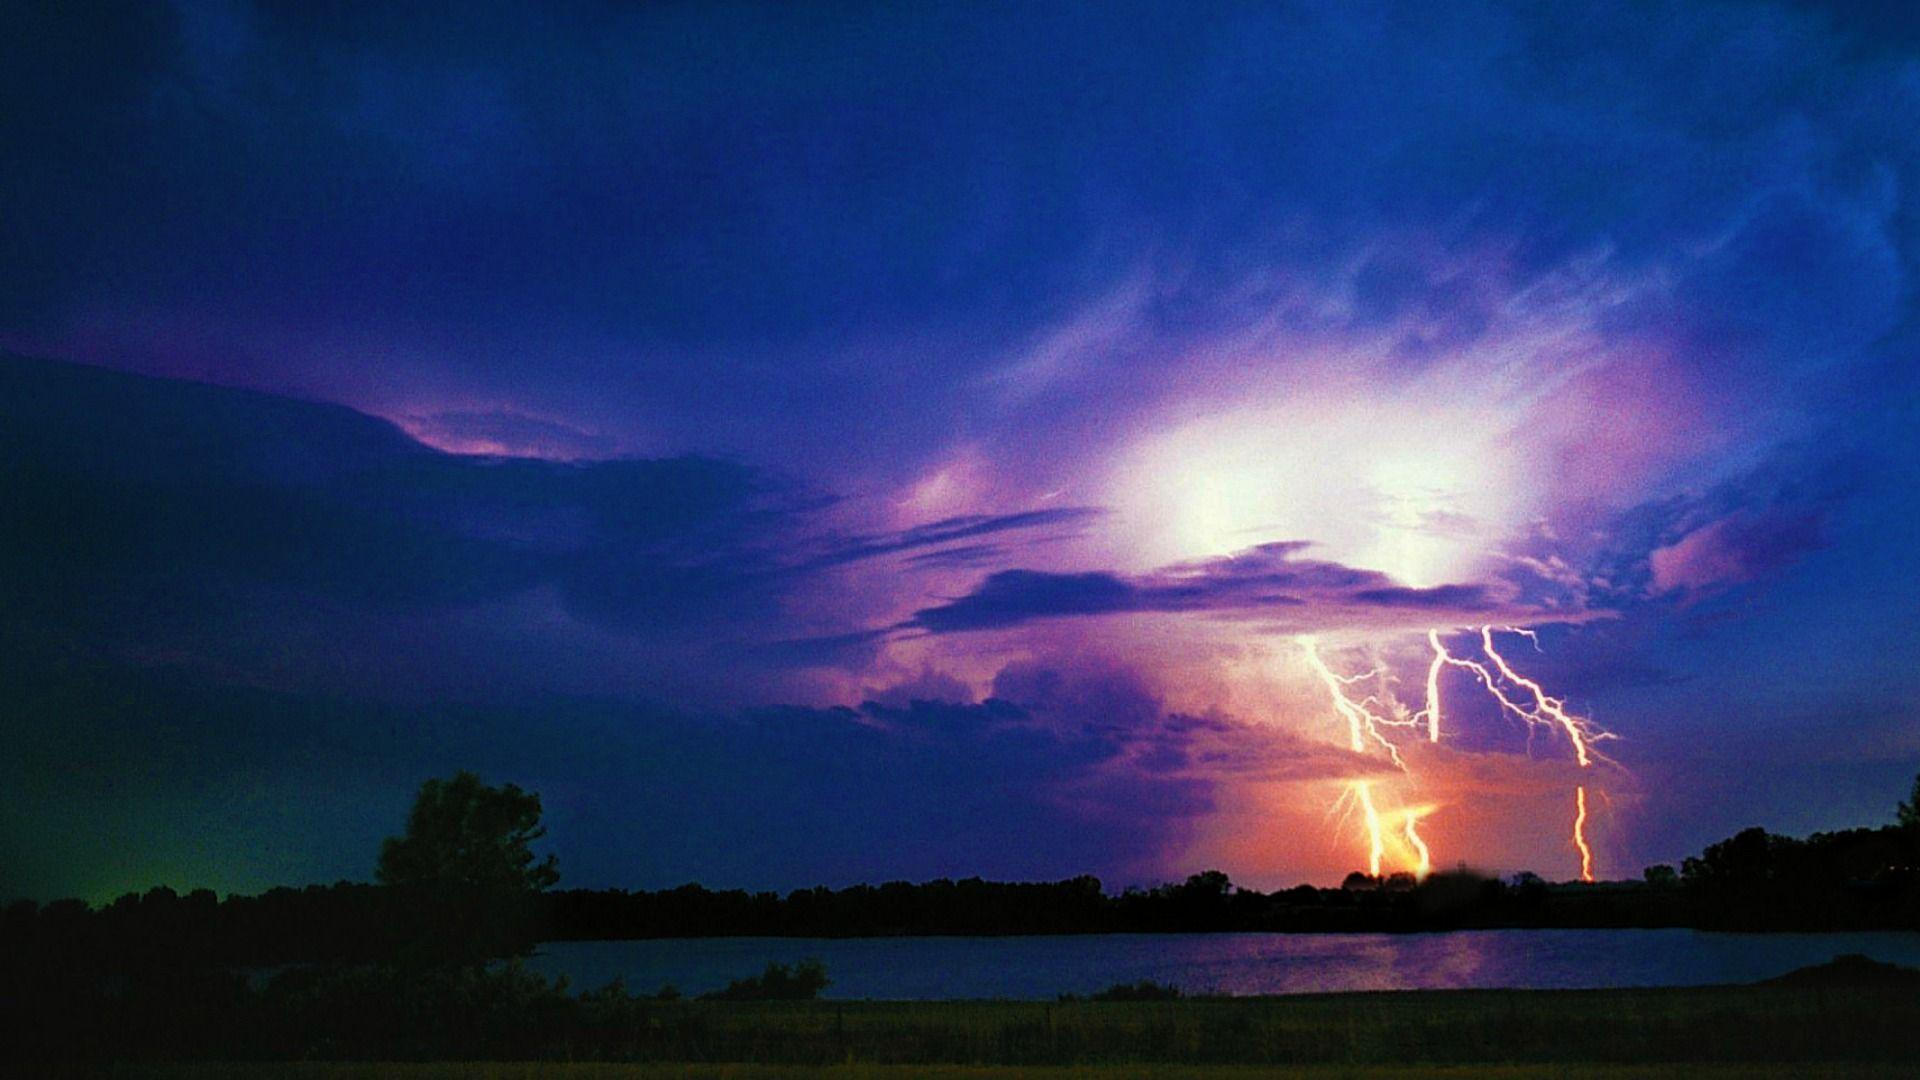 Hd Thunderstorm Wallpapers: Thunderstorm Wallpapers